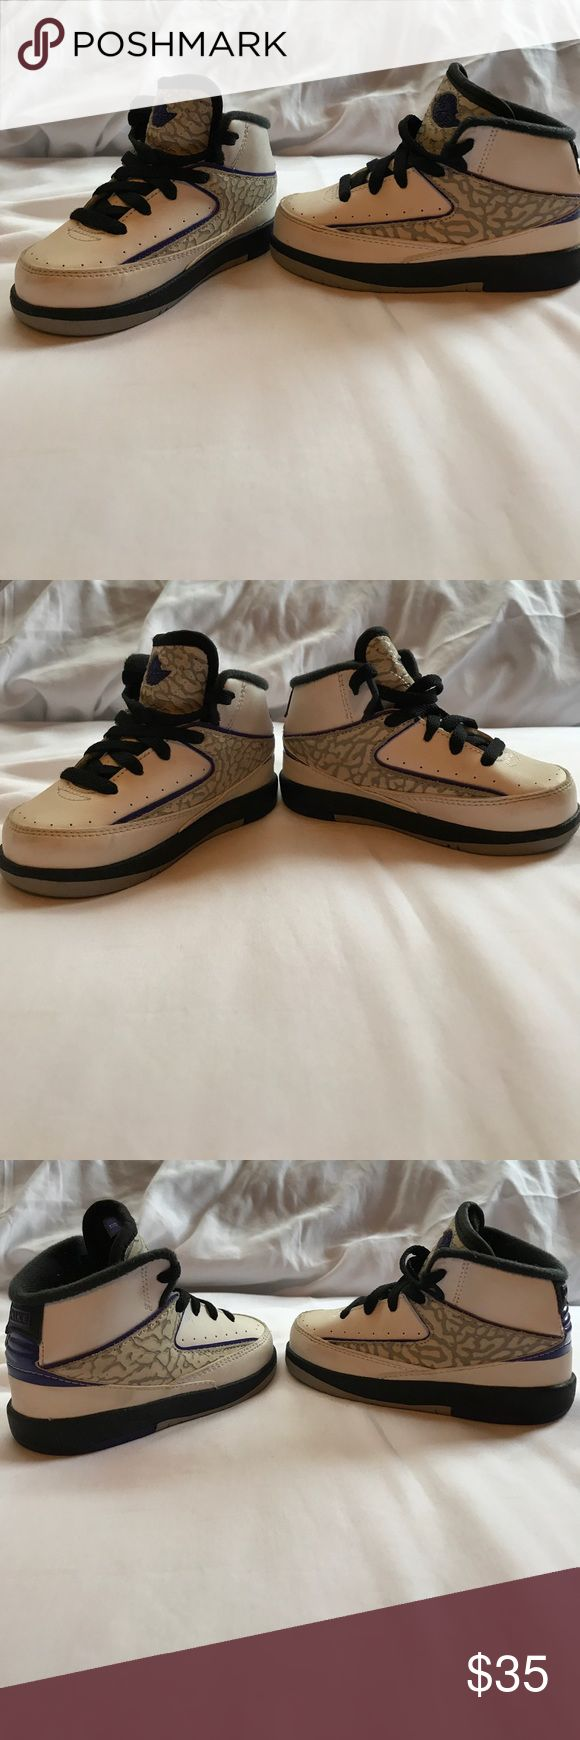 Nike Air Jordan Retro 2 Grape Concord Style:	Nike Air Jordan Retro 2 Grape Concord Size:	6C Children  Original Box:	 Not Available These shoes have only been worn a handful of times. Shows some signs of wear great pre owned condition. Air Jordan Shoes Sneakers